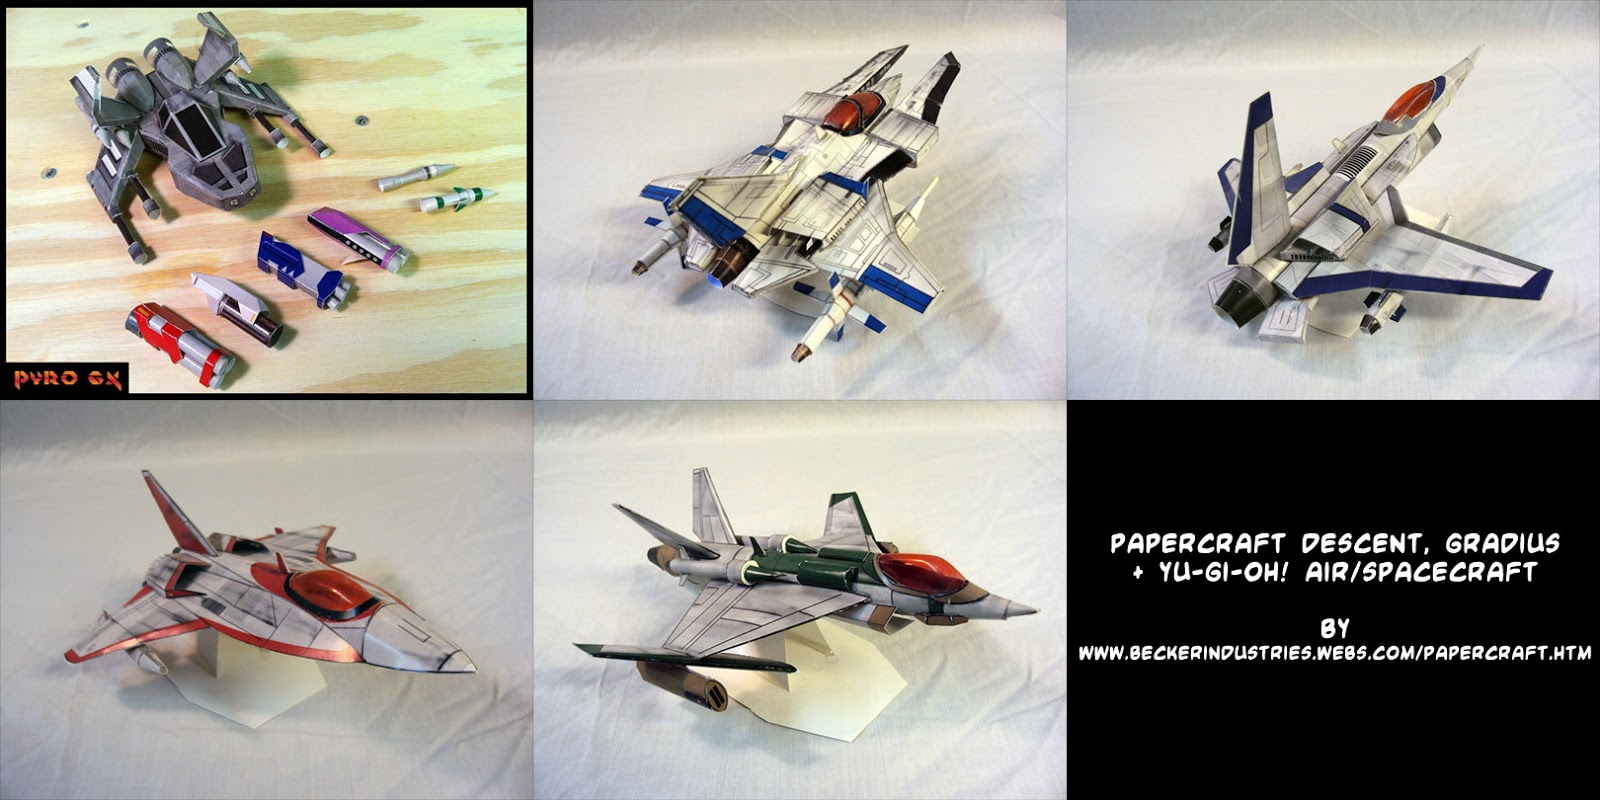 Gradius Paper Craft